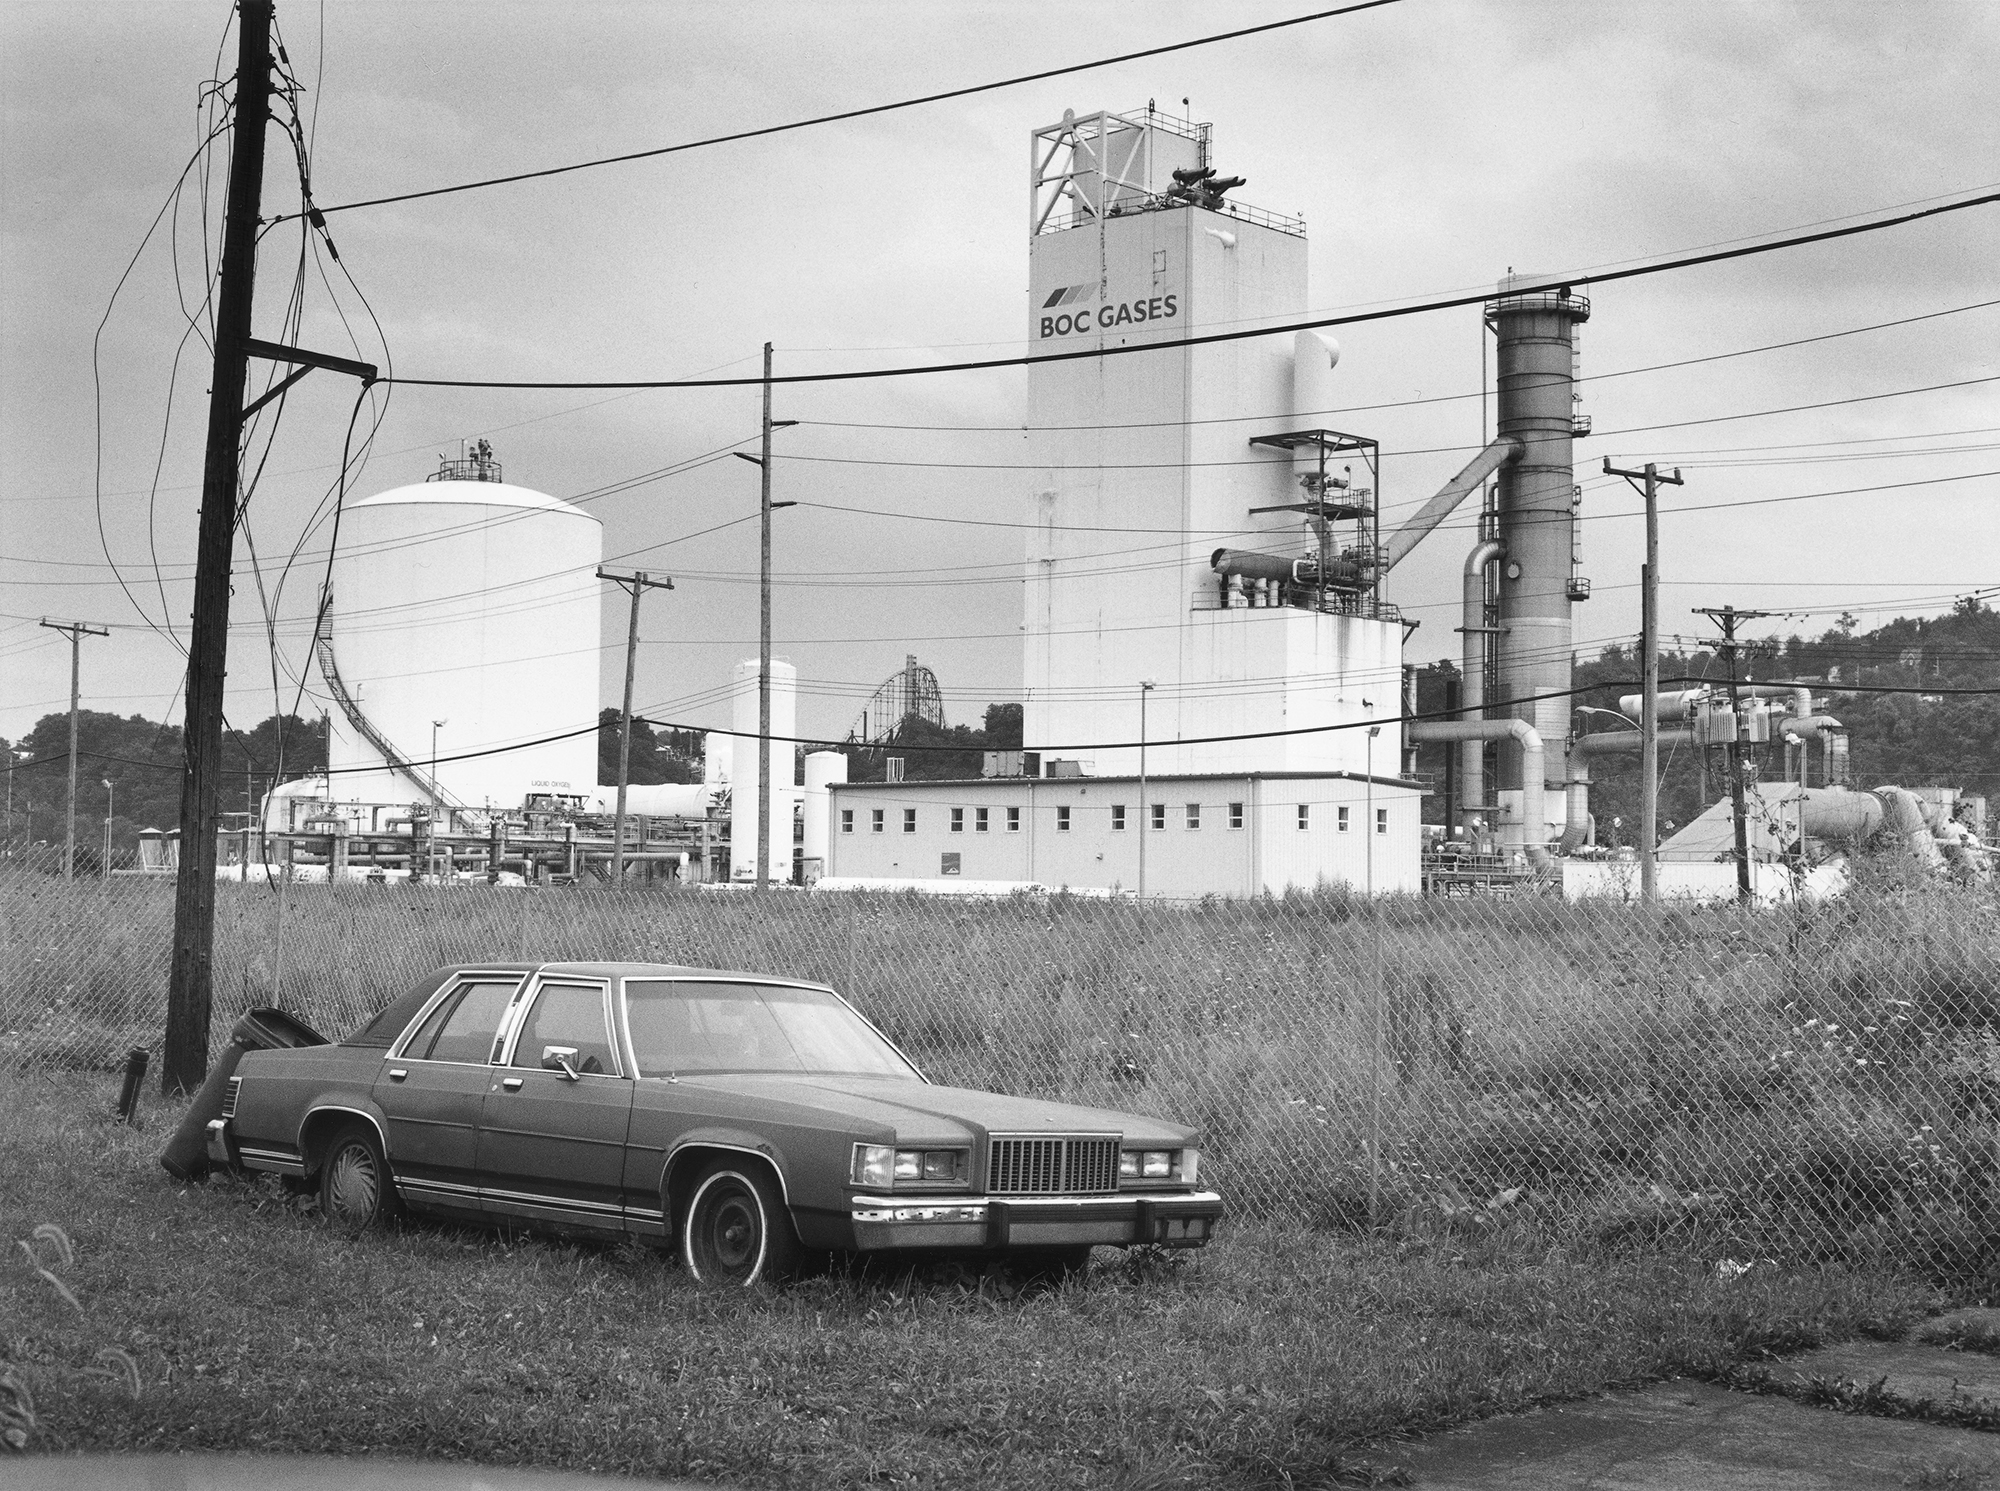 """""""There used to be a project complex here, the Talbot Towers. I was born and raised there. Through my photographs I excavate hidden histories."""" The Bottom 2009, from """"The Notion of Family"""" (Aperture 2014)."""